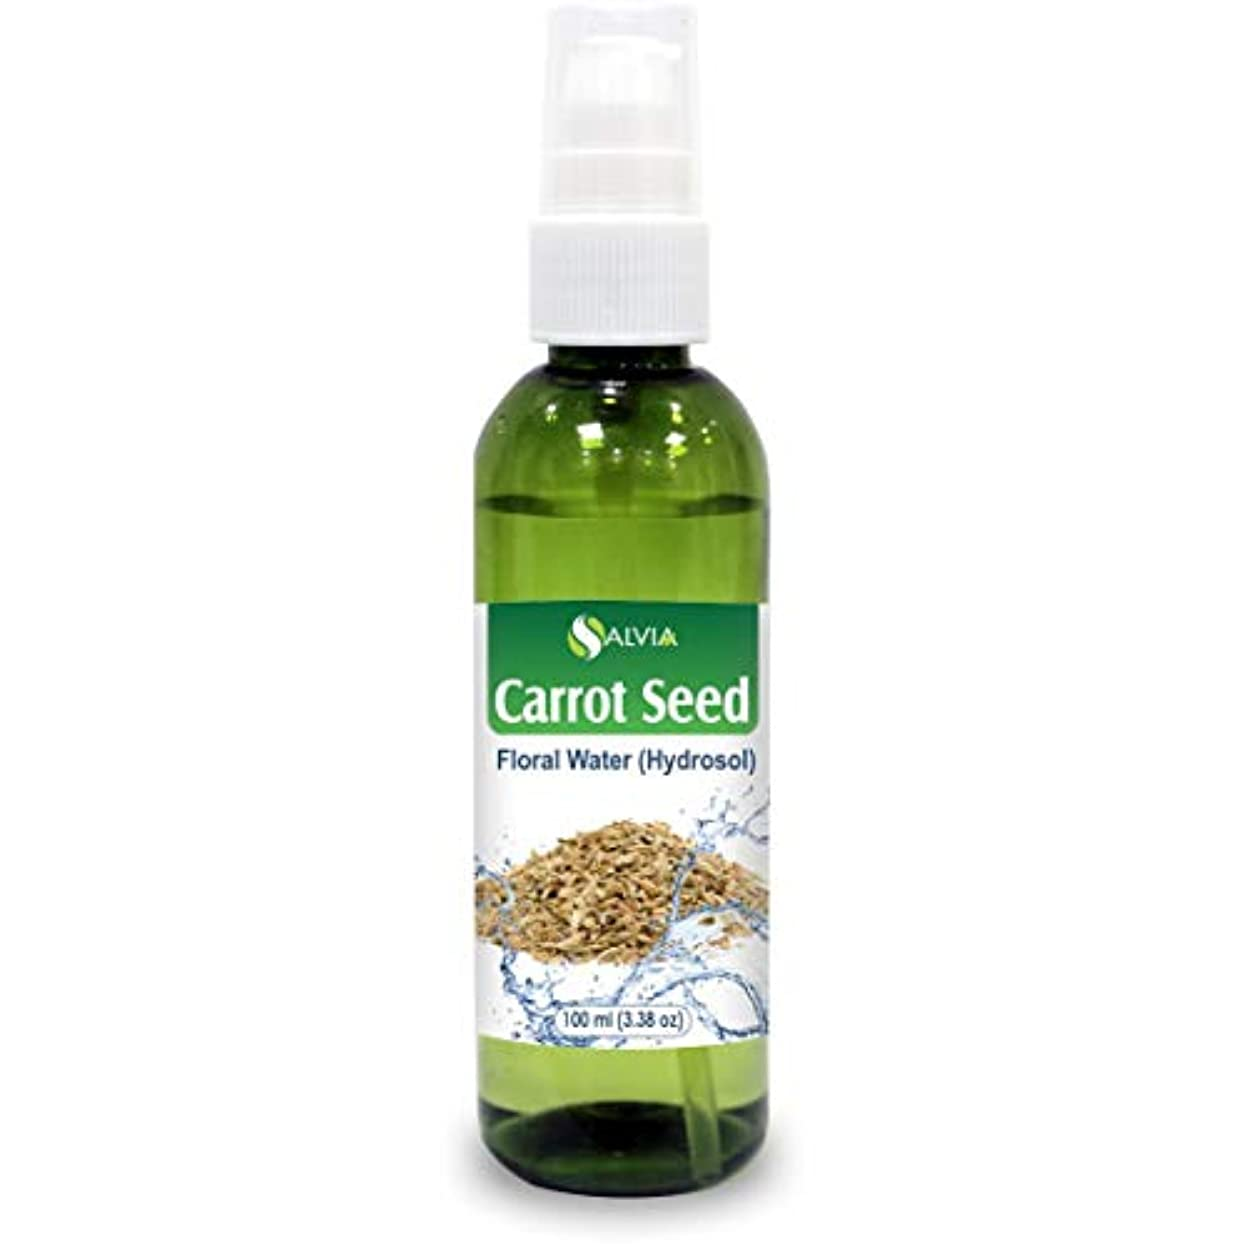 フック惑星背景Carrot Seed Floral Water Floral Water 100ml (Hydrosol) 100% Pure And Natural